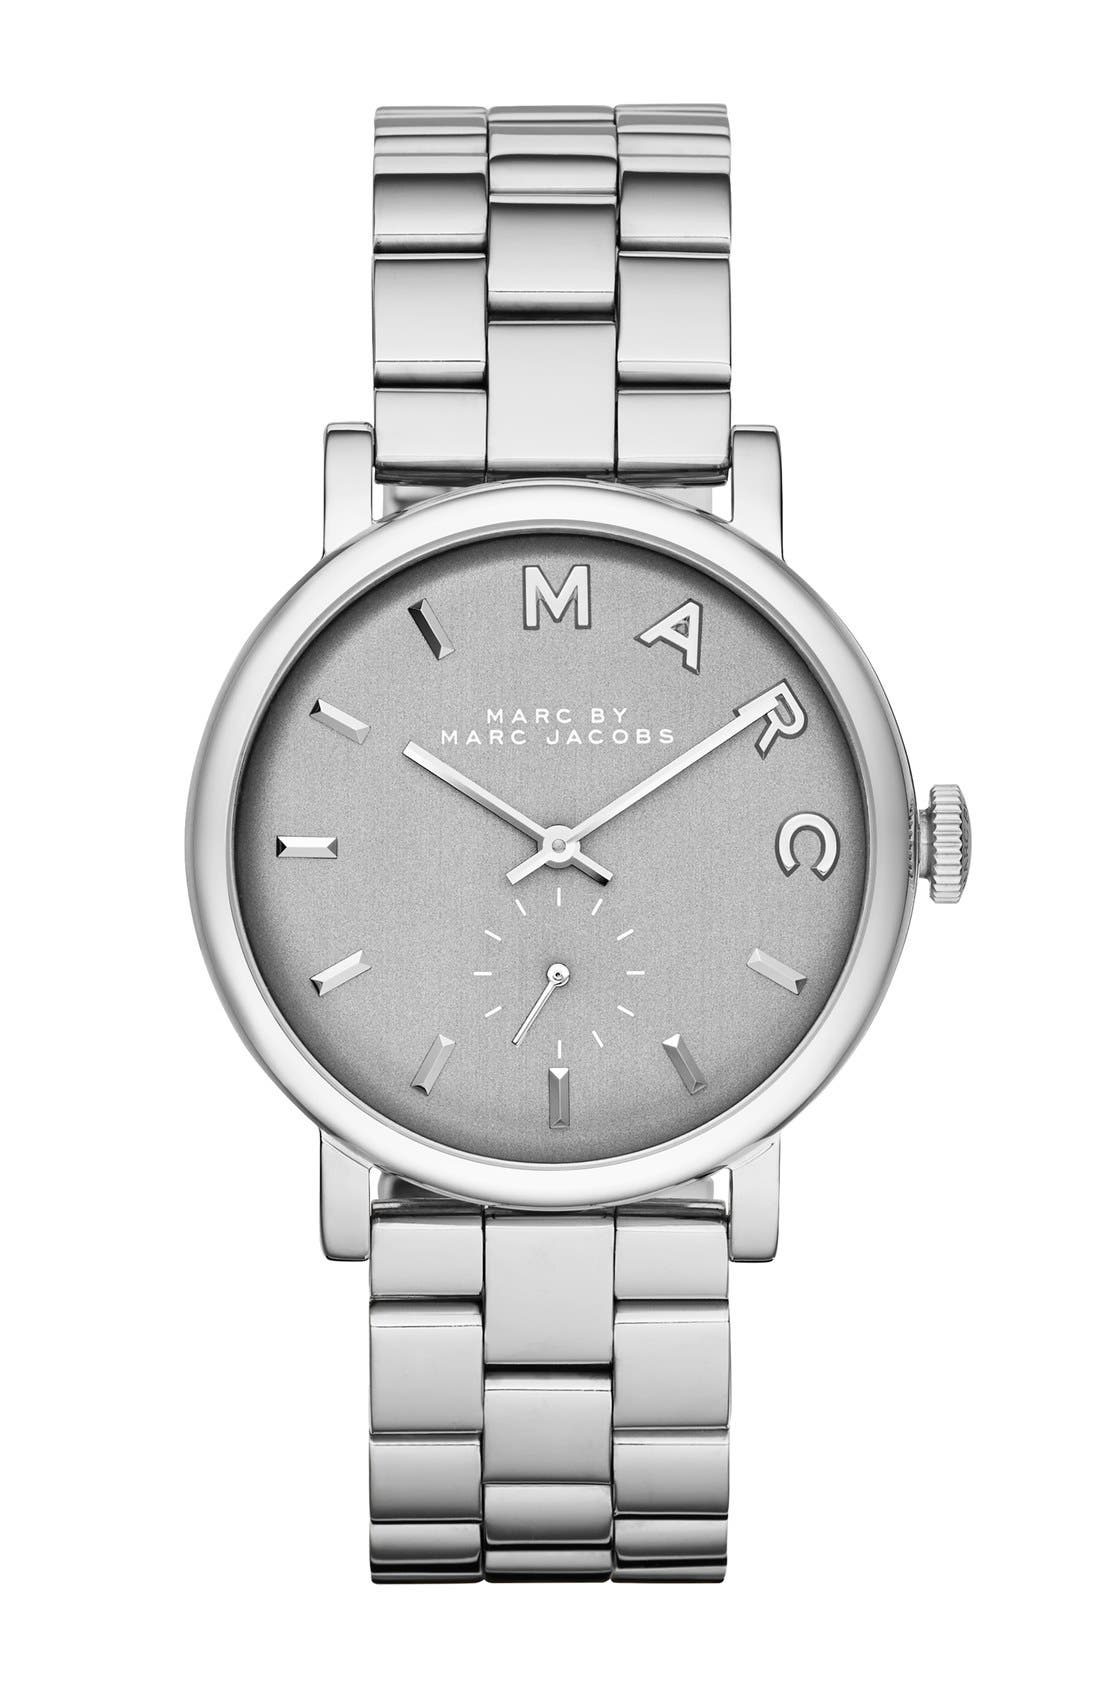 Main Image - MARC JACOBS 'Baker' Bracelet Watch, 36mm (Nordstrom Exclusive)